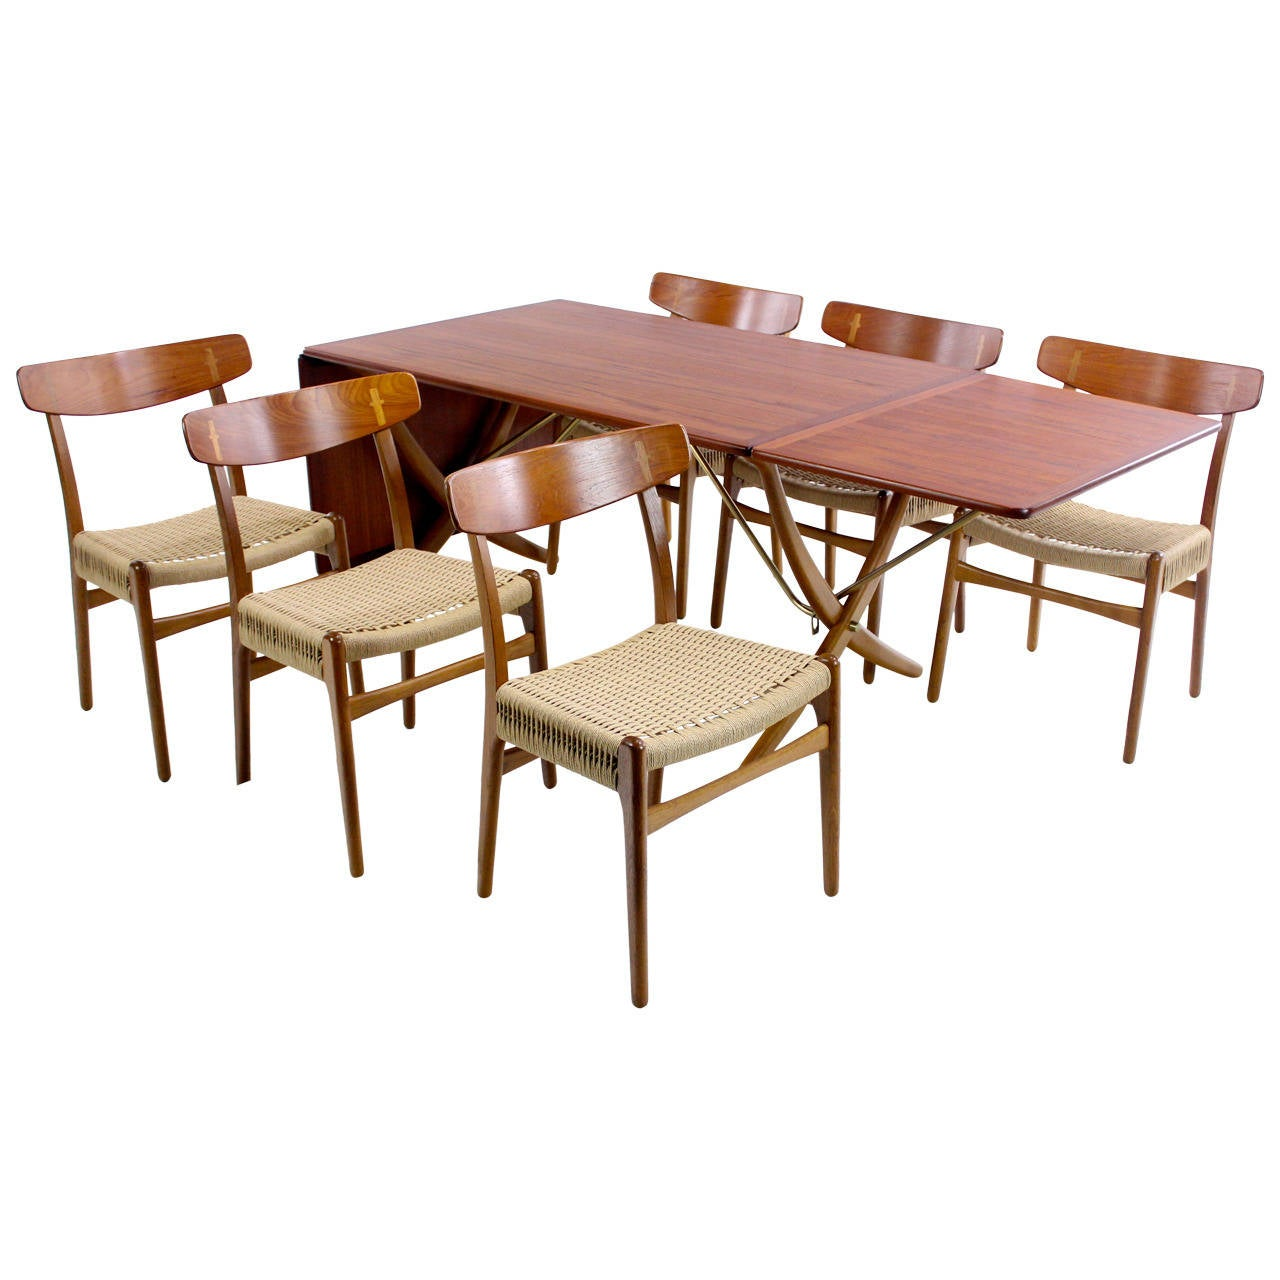 impressive danish modern teak and oak dining set designed